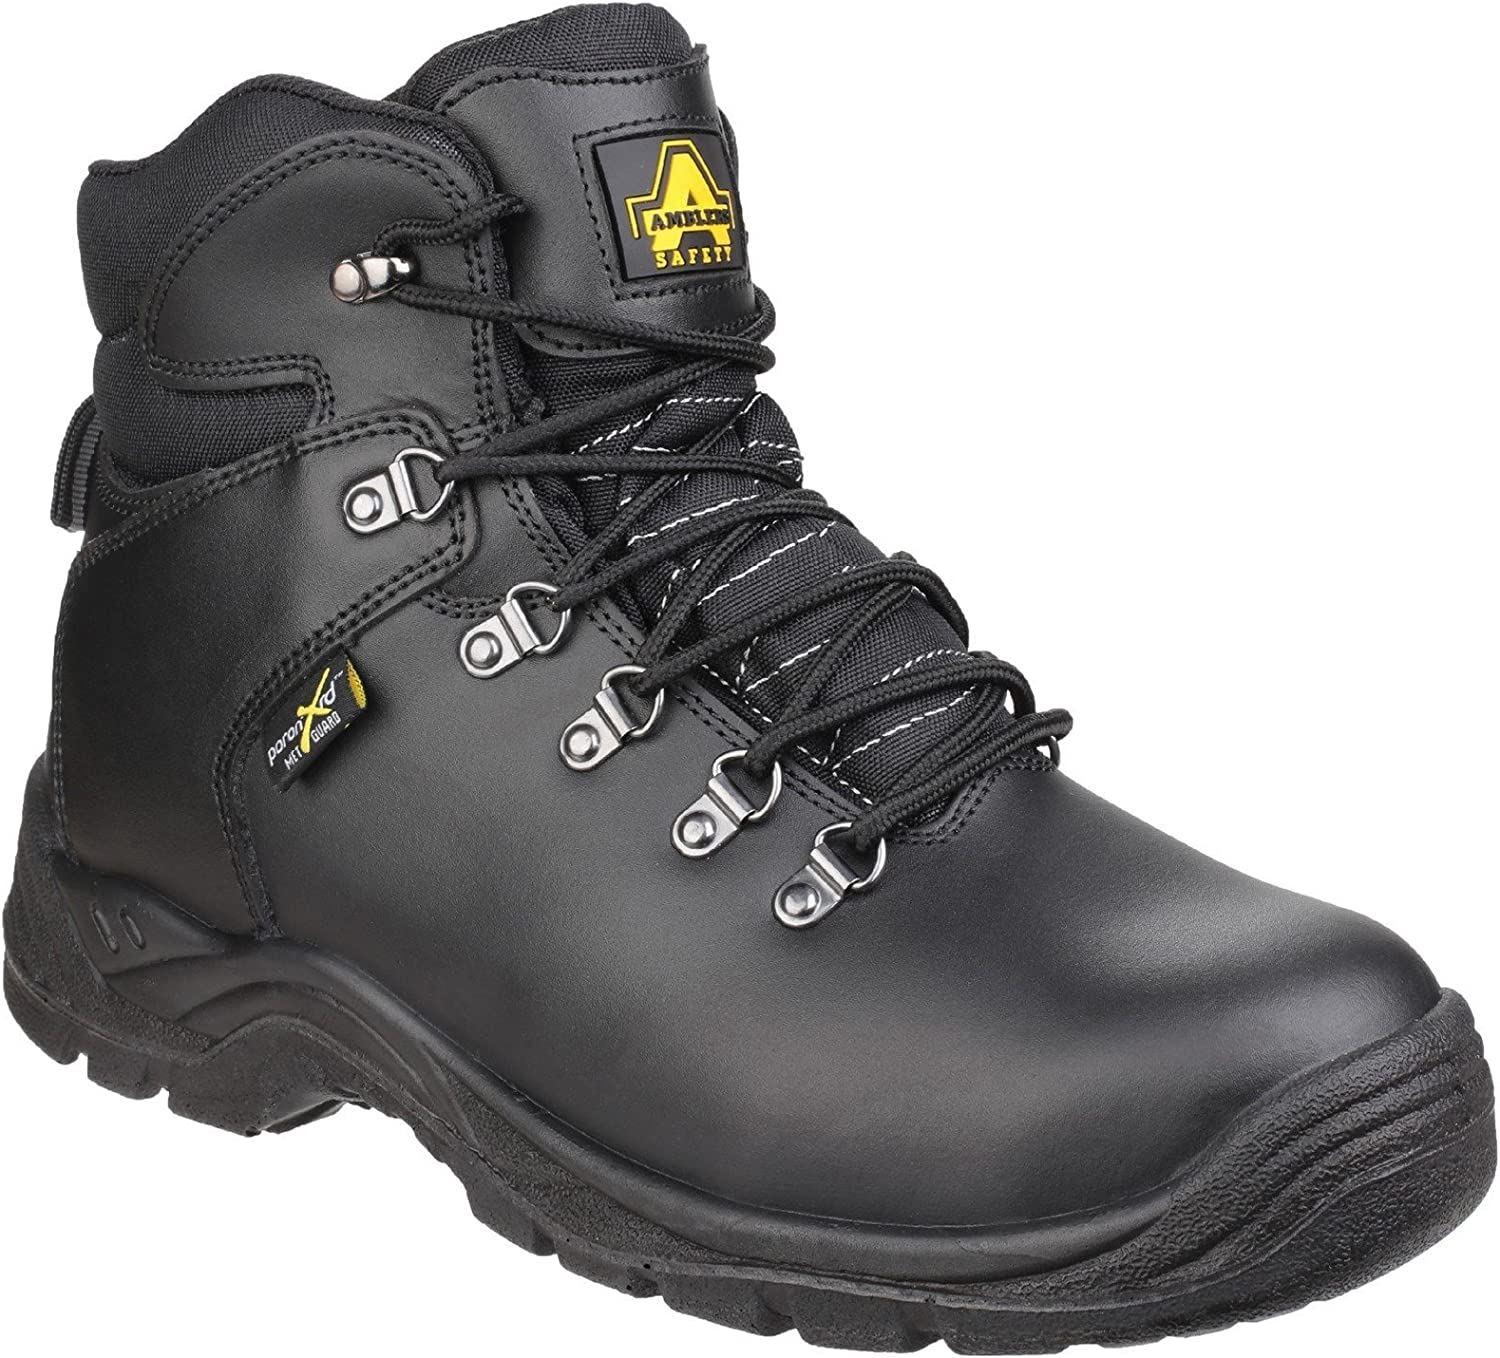 Amblers Safety Unisex As335 Pgoldn Internal Metatarsal Safety Work Boot Black 9